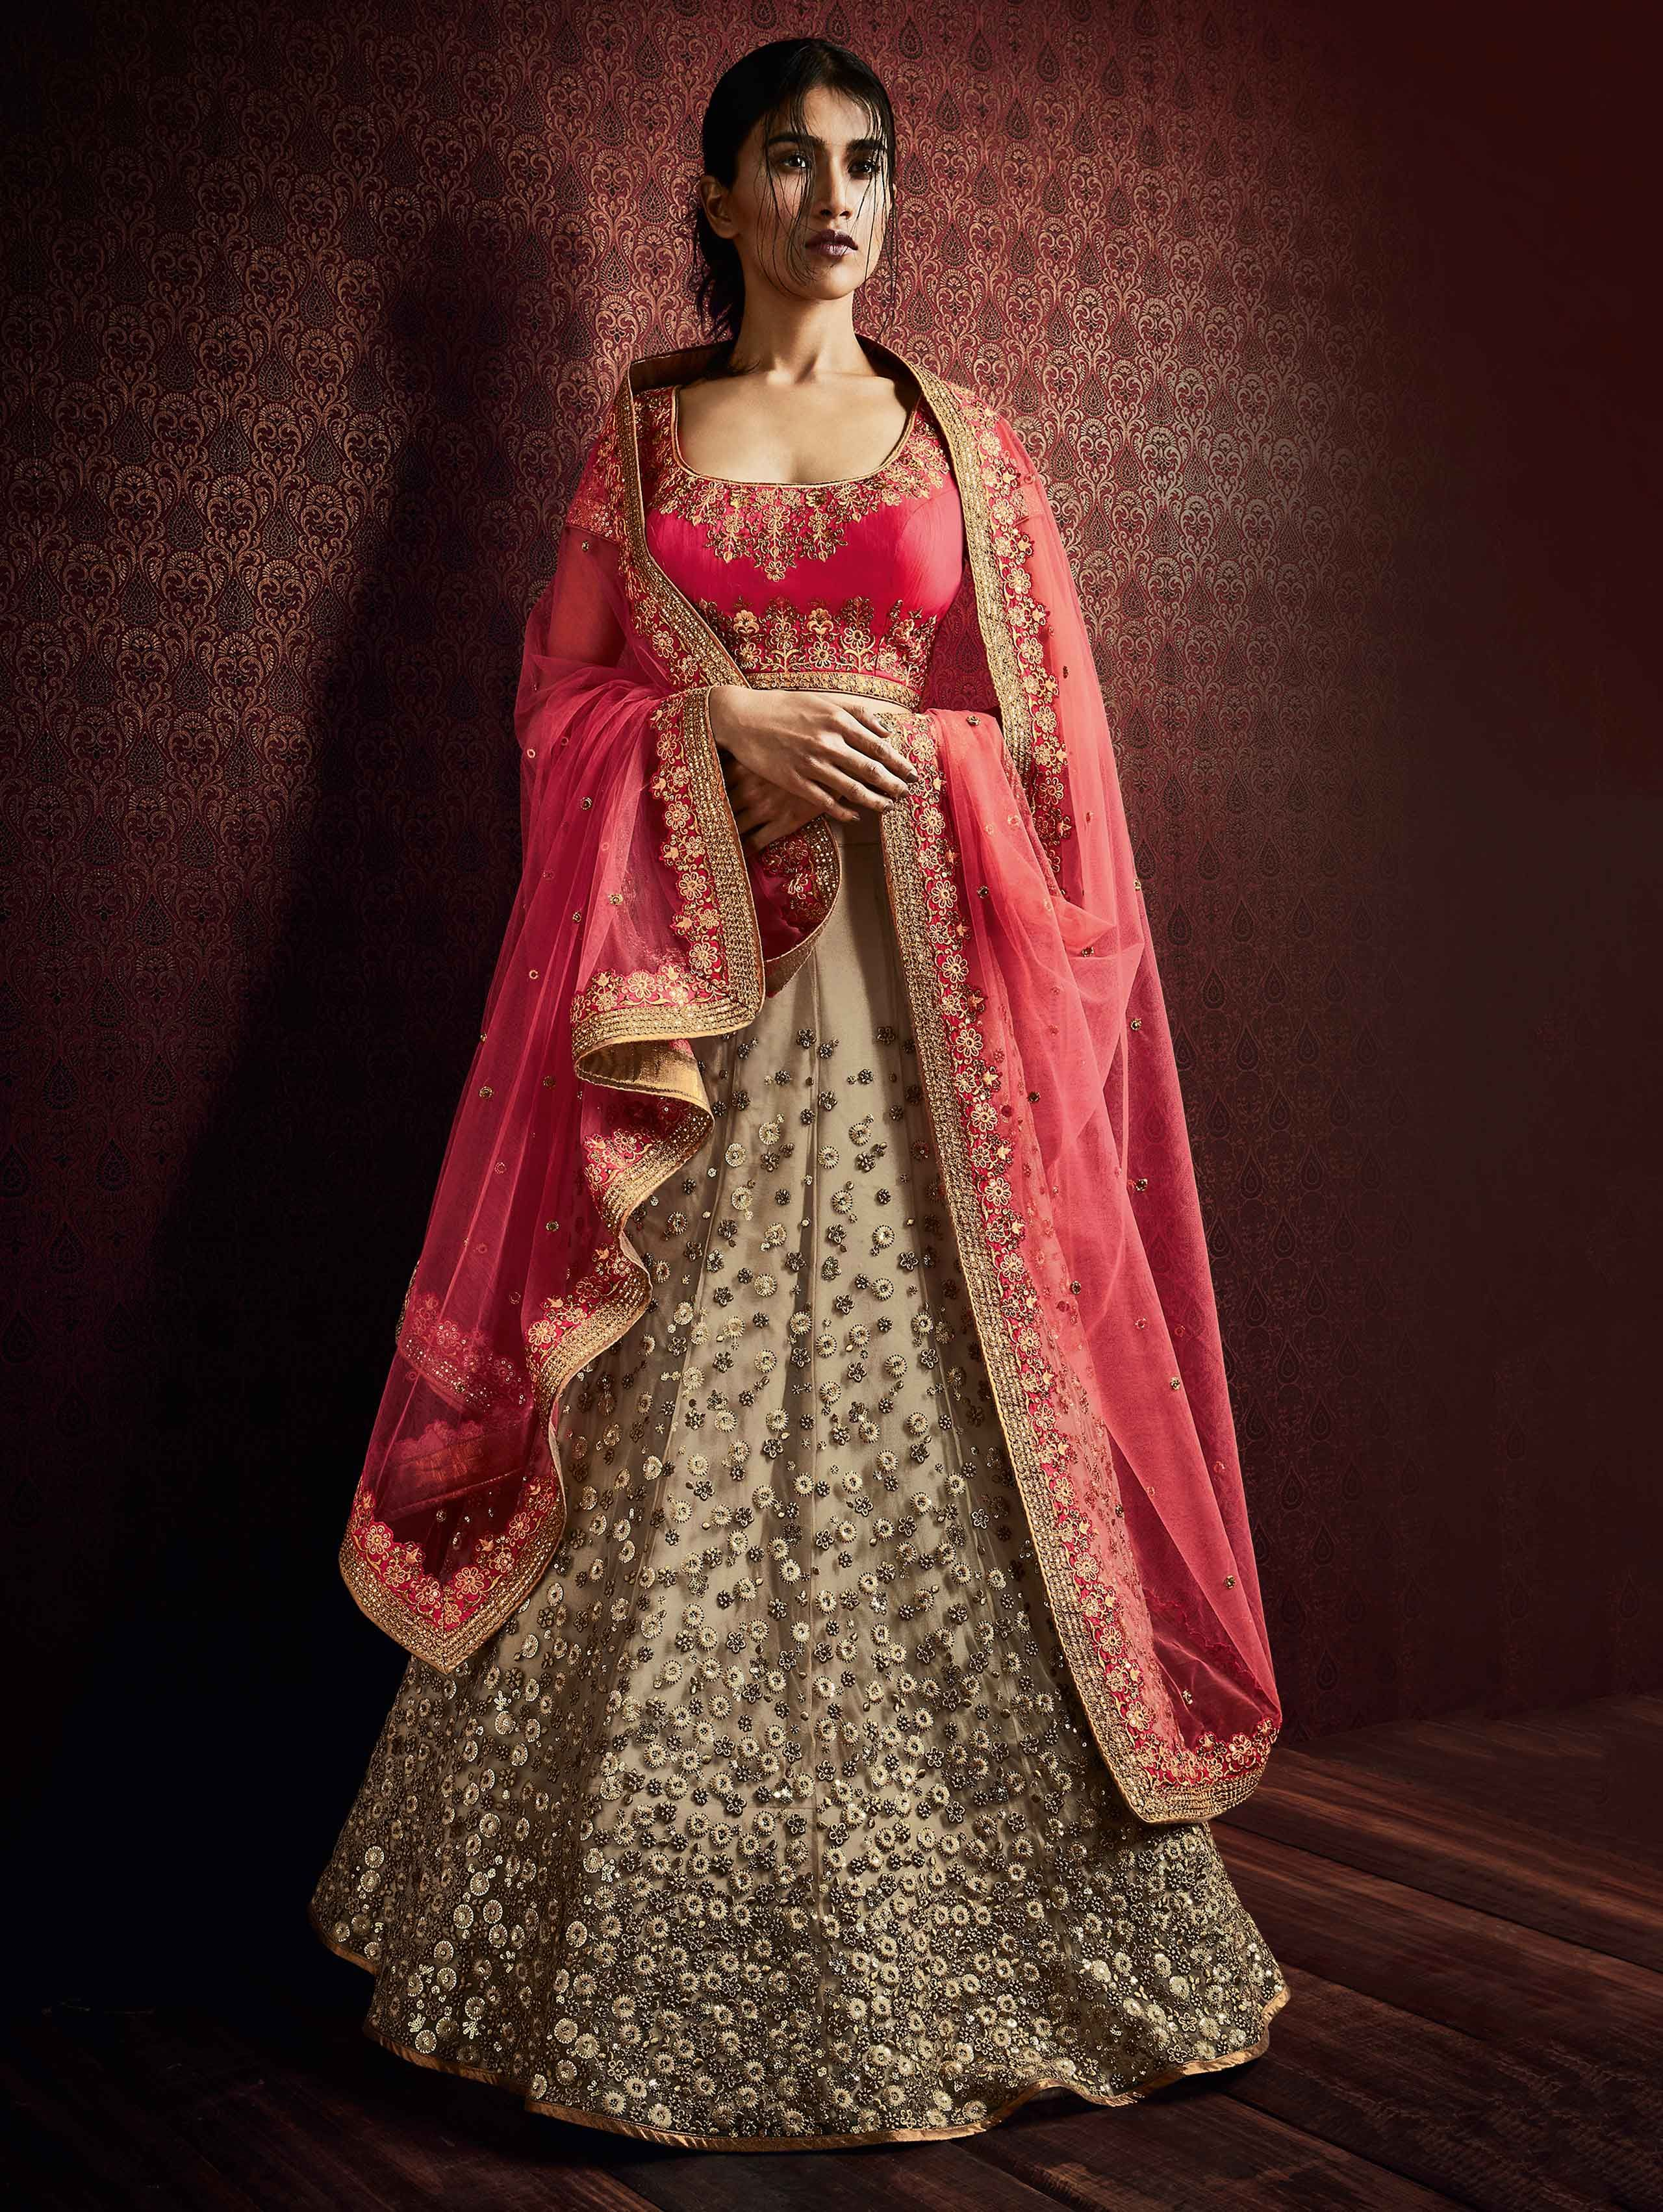 c241829cb Buy Sea Green Silk Lehenga Choli with Embroidery Work Online at Best Price  for Women - CCAA2287 - Saree.com